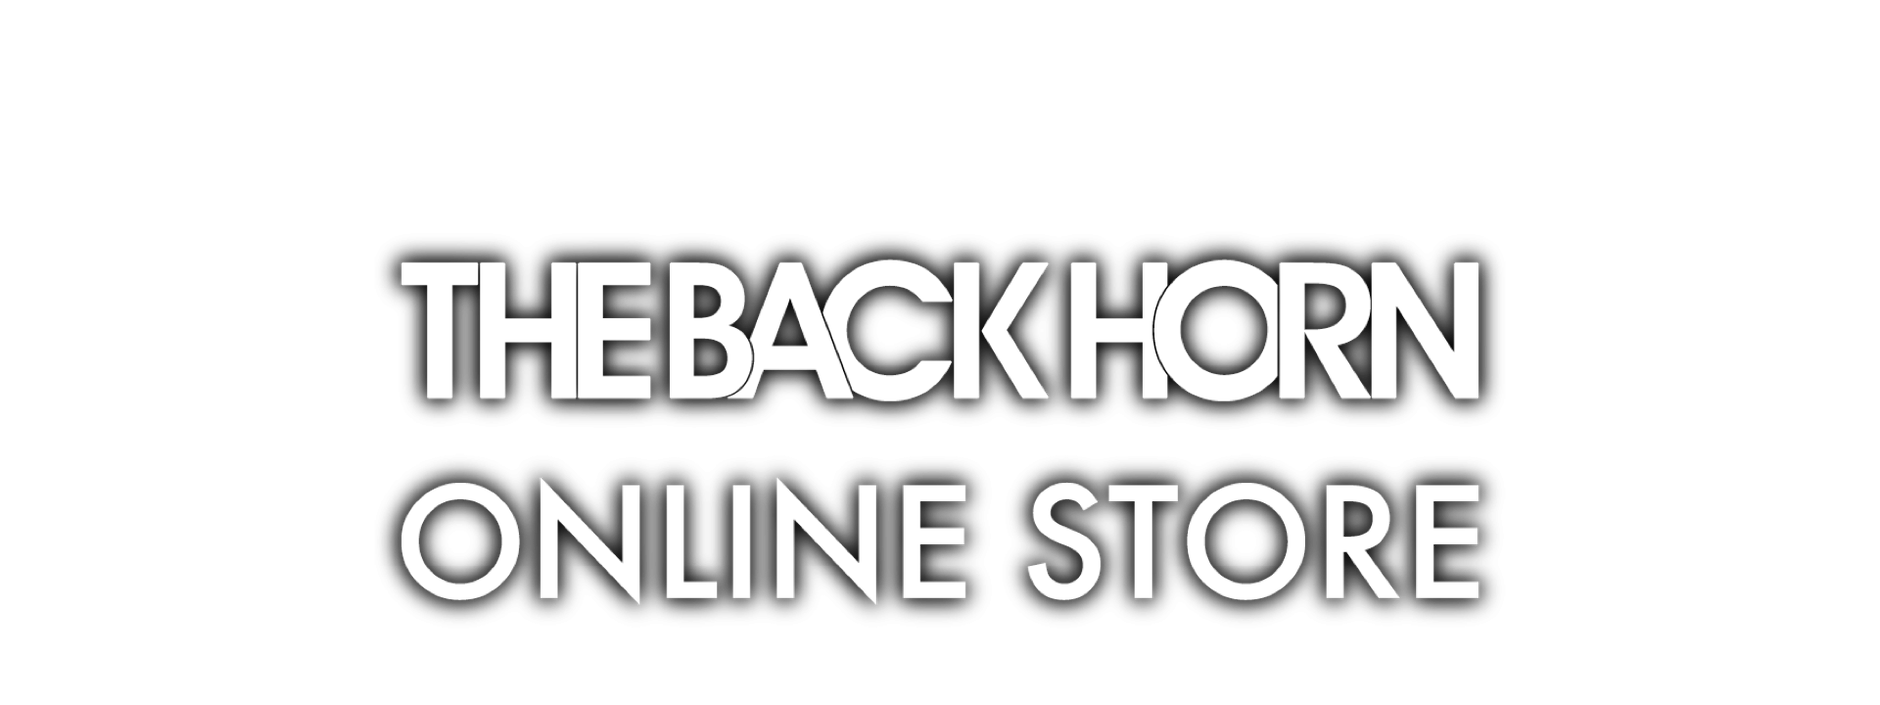 THE BACK HORN ONLINE STORE